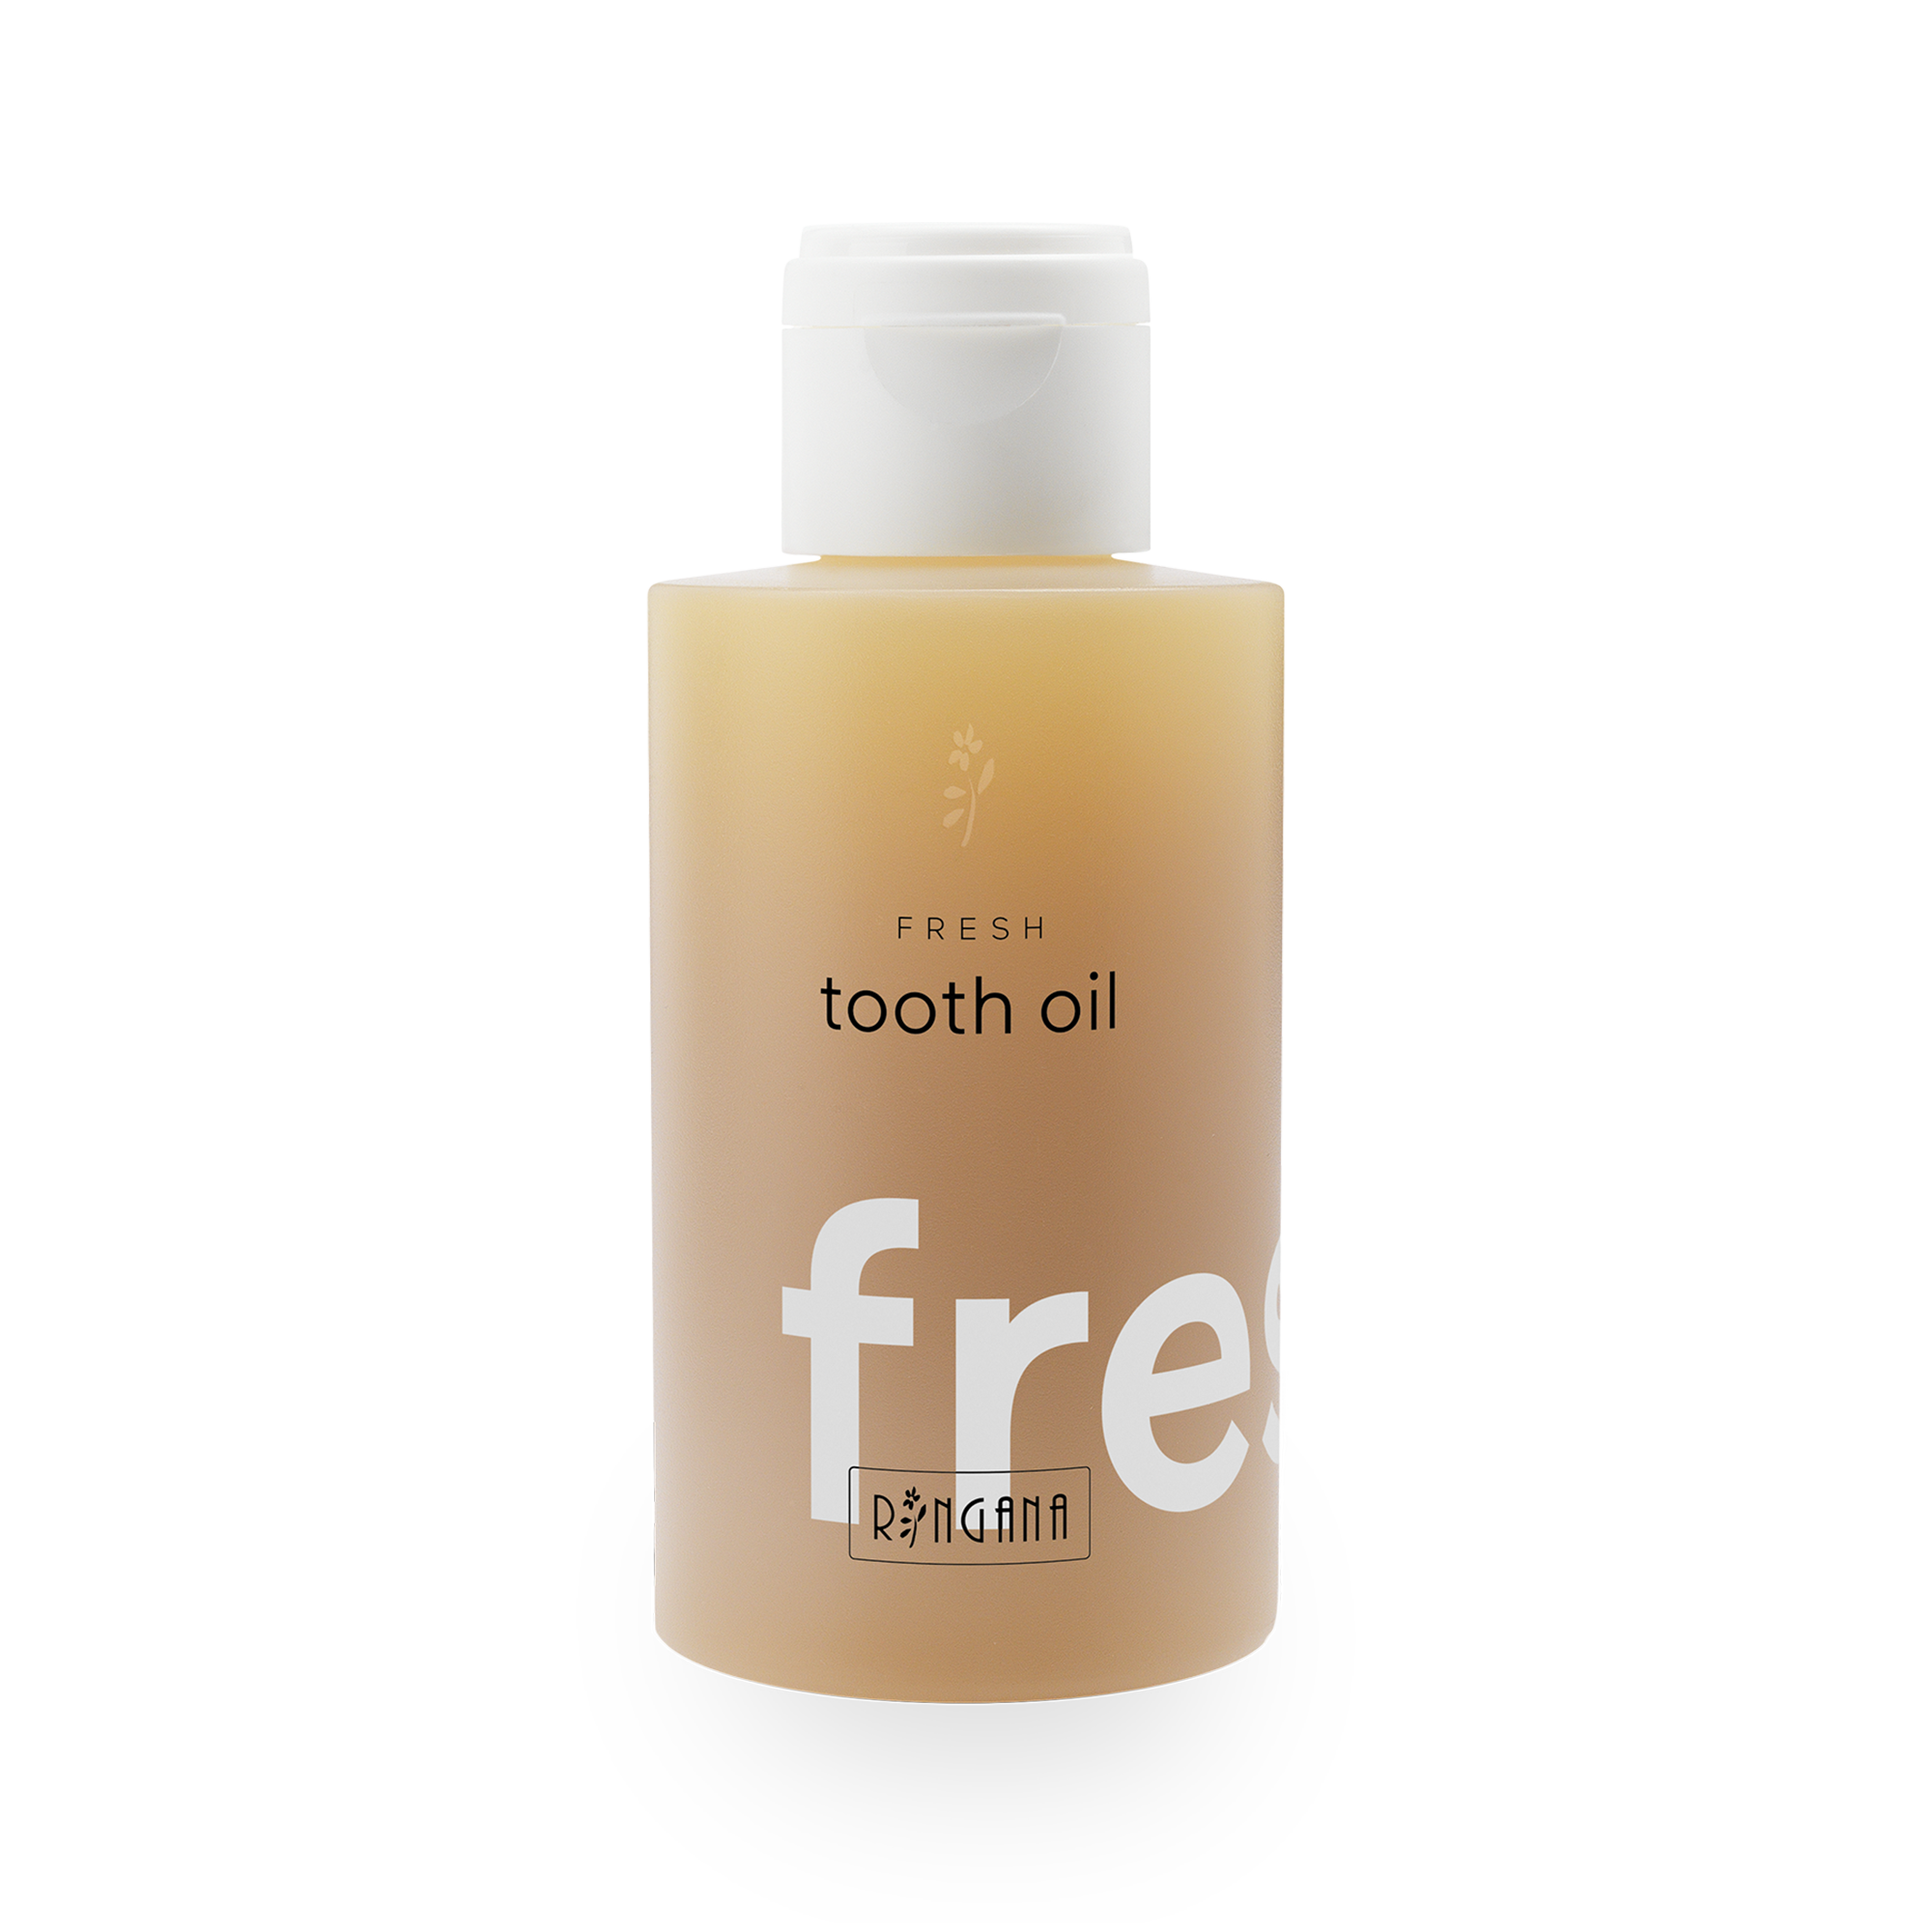 Fresh Tooth Oil